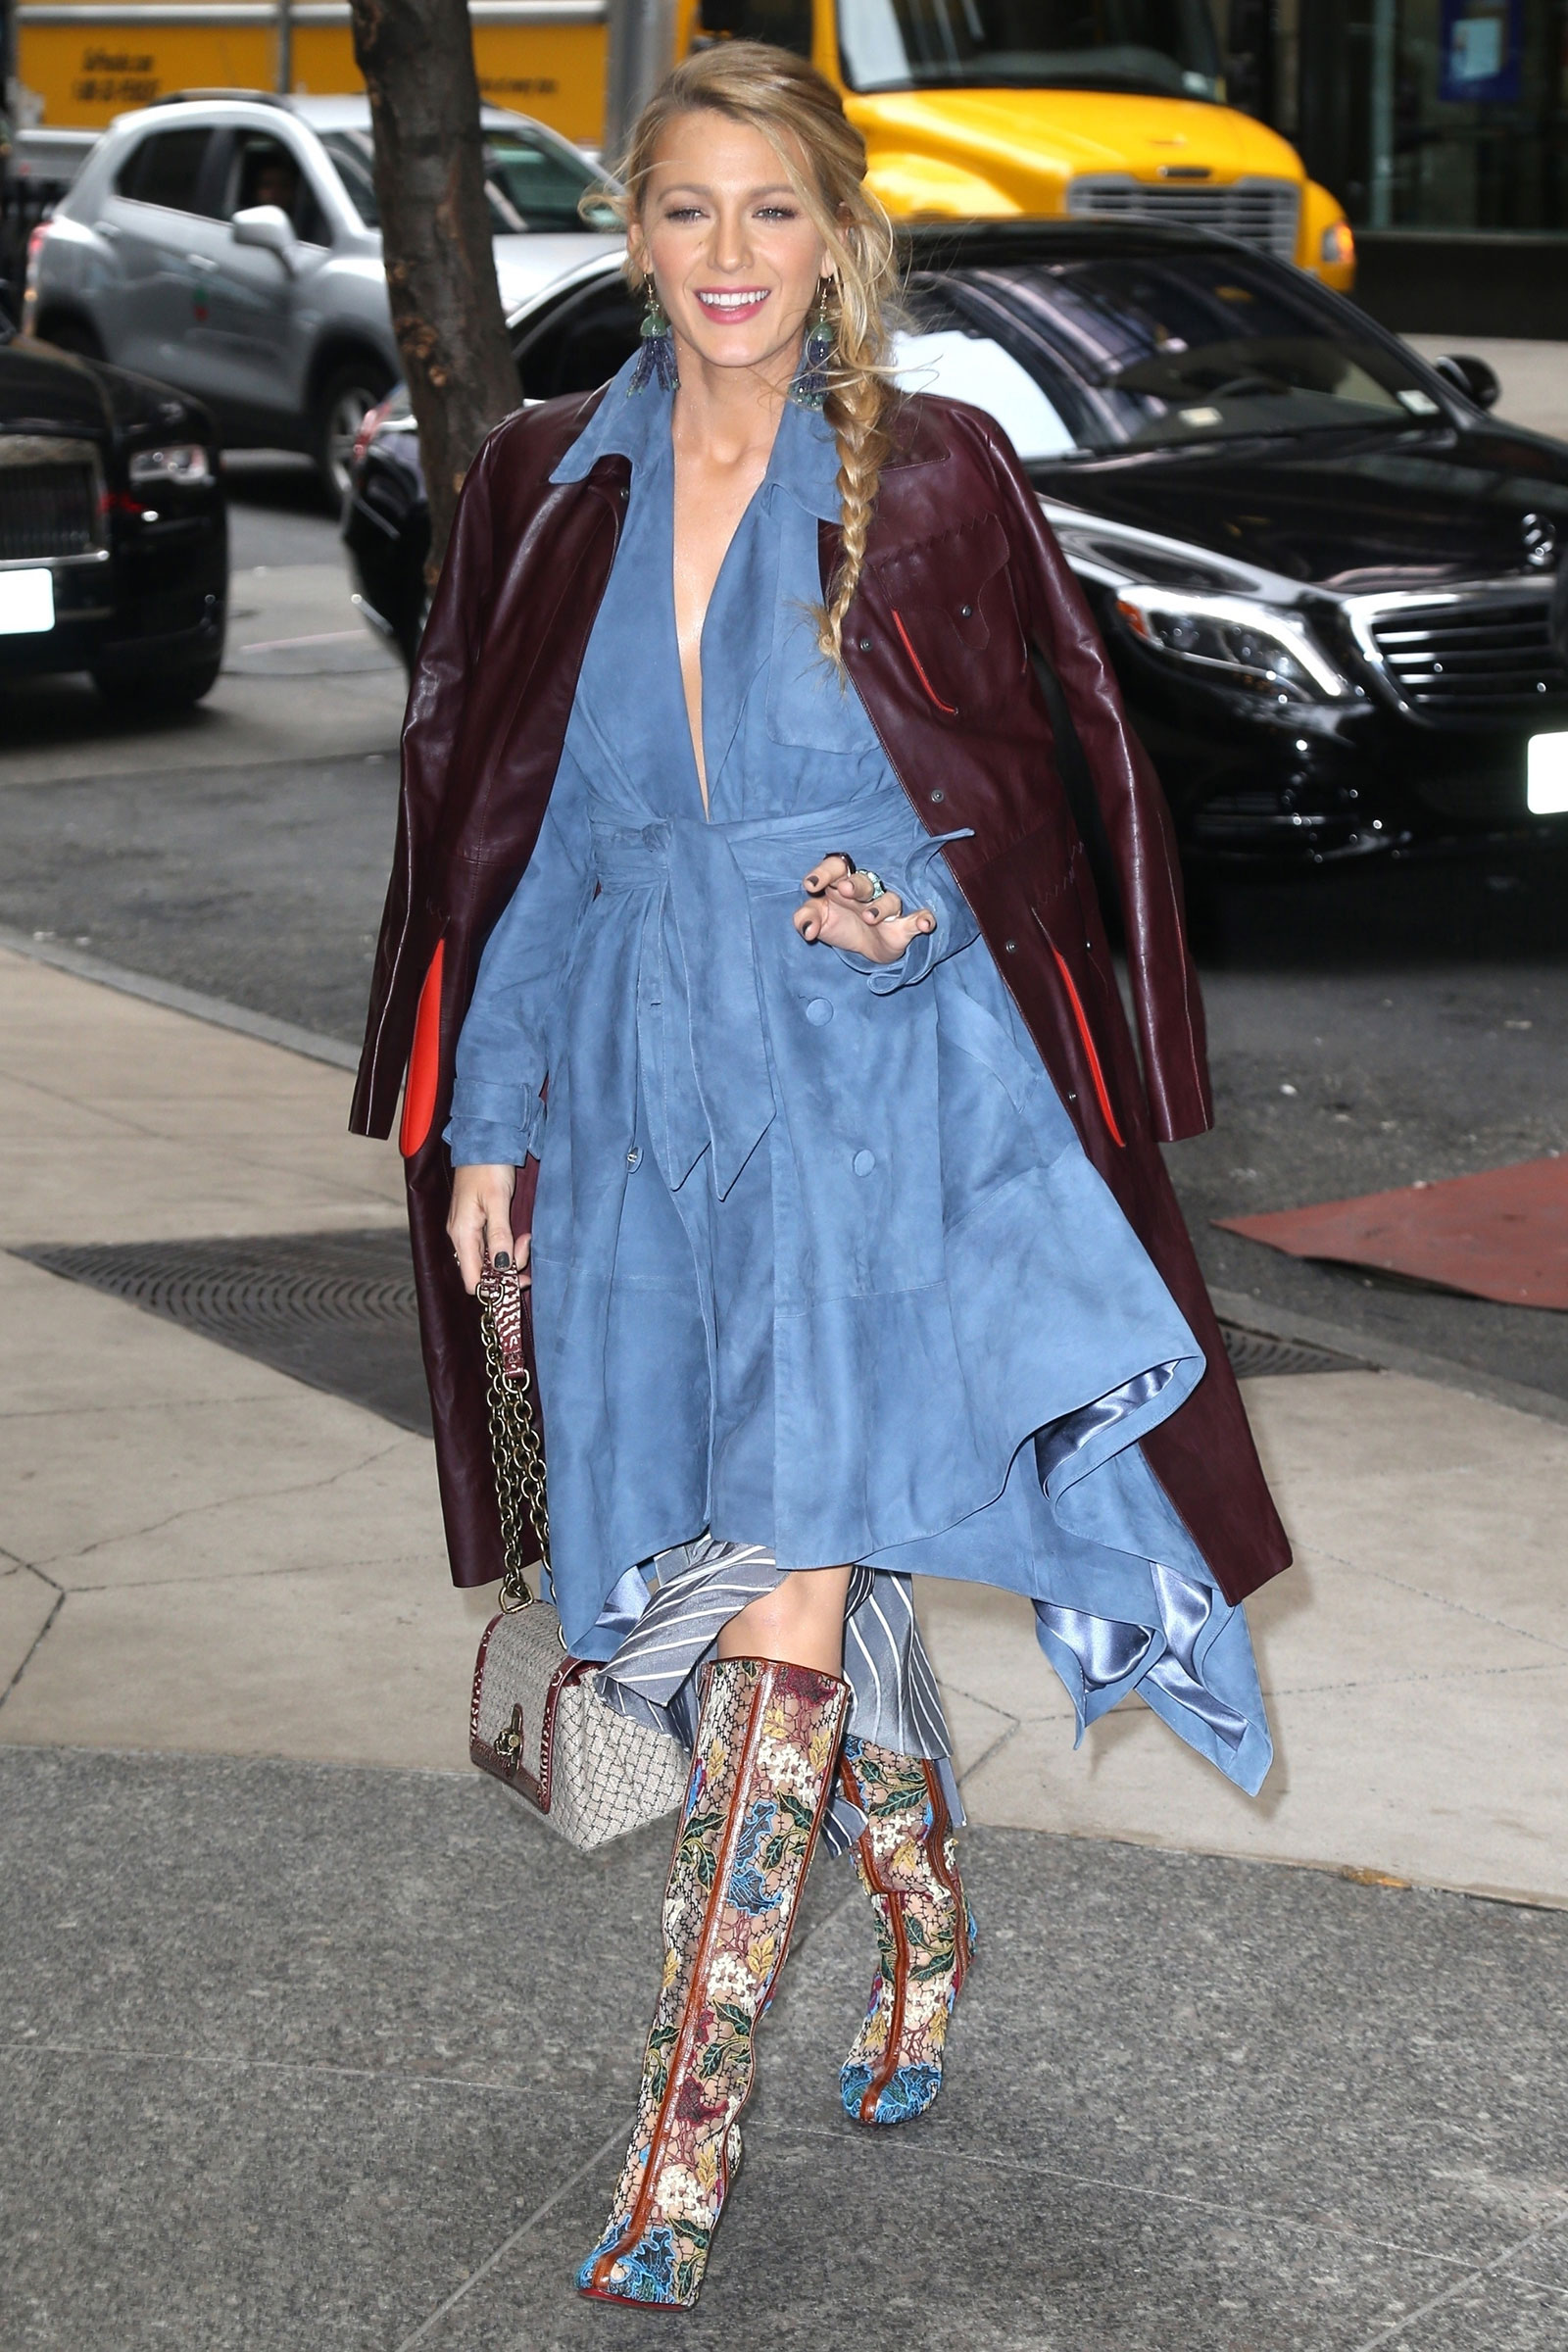 Blake Lively wears a Bottega Veneta burgundy leather trench coat, denim wrap dress and Christian Louboutin embroidered boots.